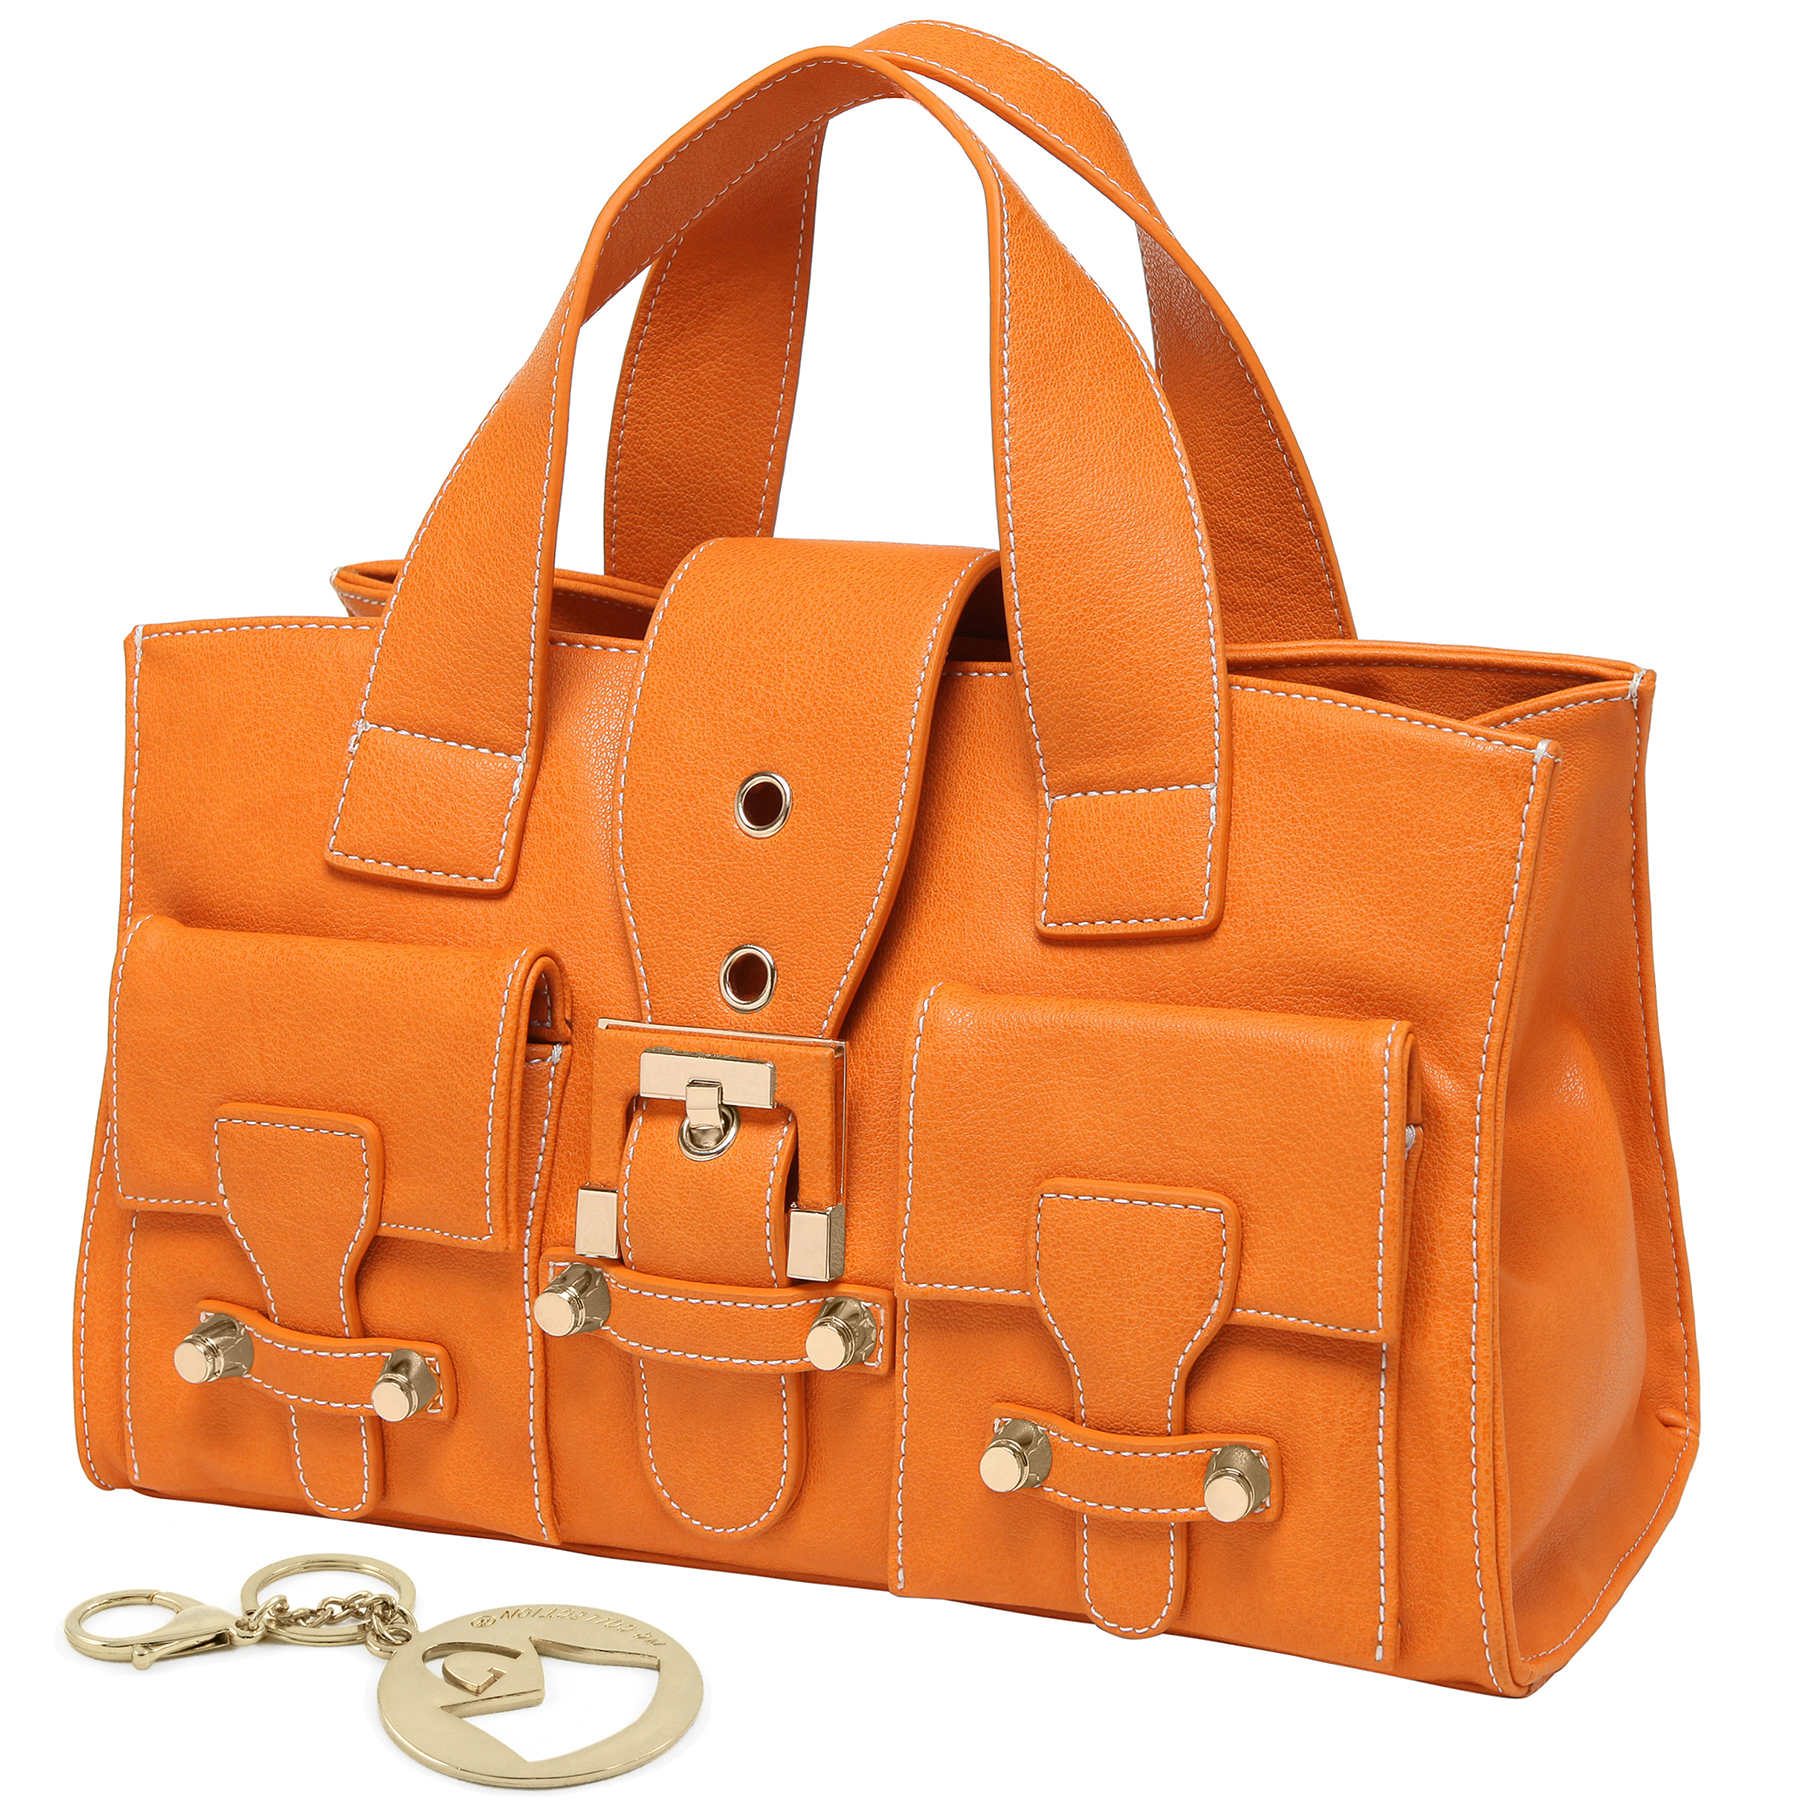 Anna Amber Orange satchel style womens designer handbag main image